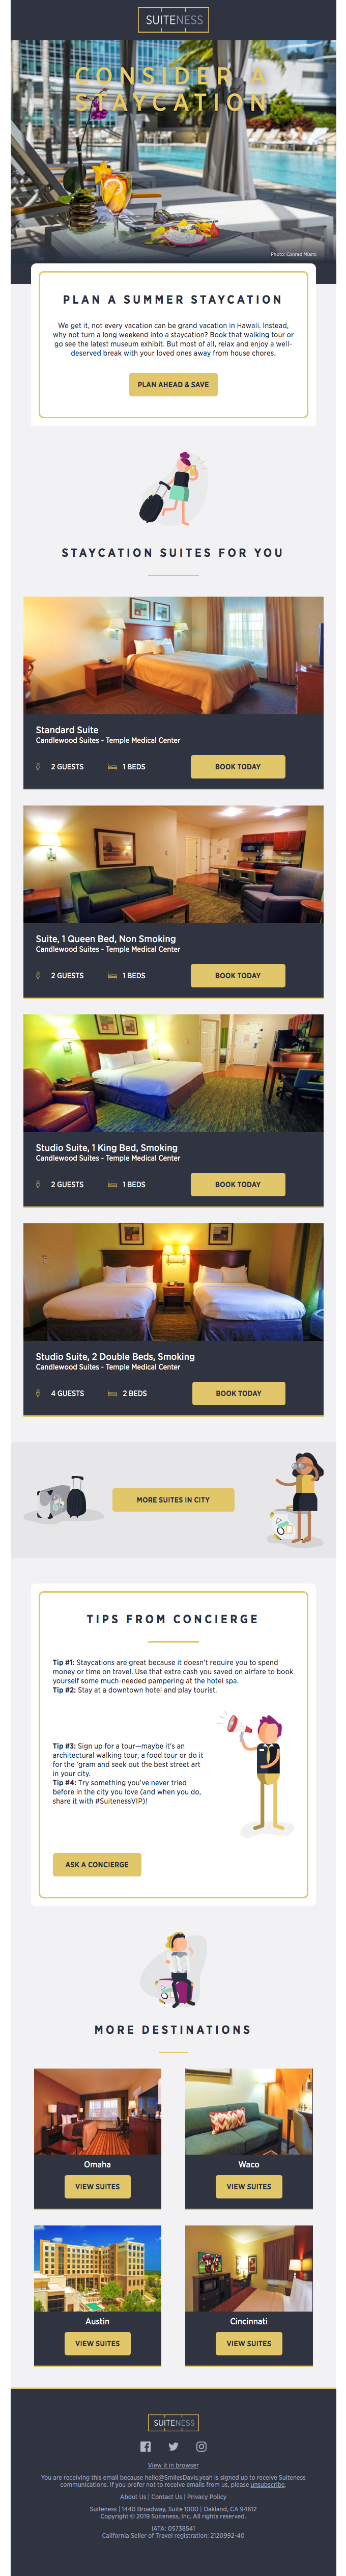 Personalized newsletter from Suiteness showing different suites based on user location.